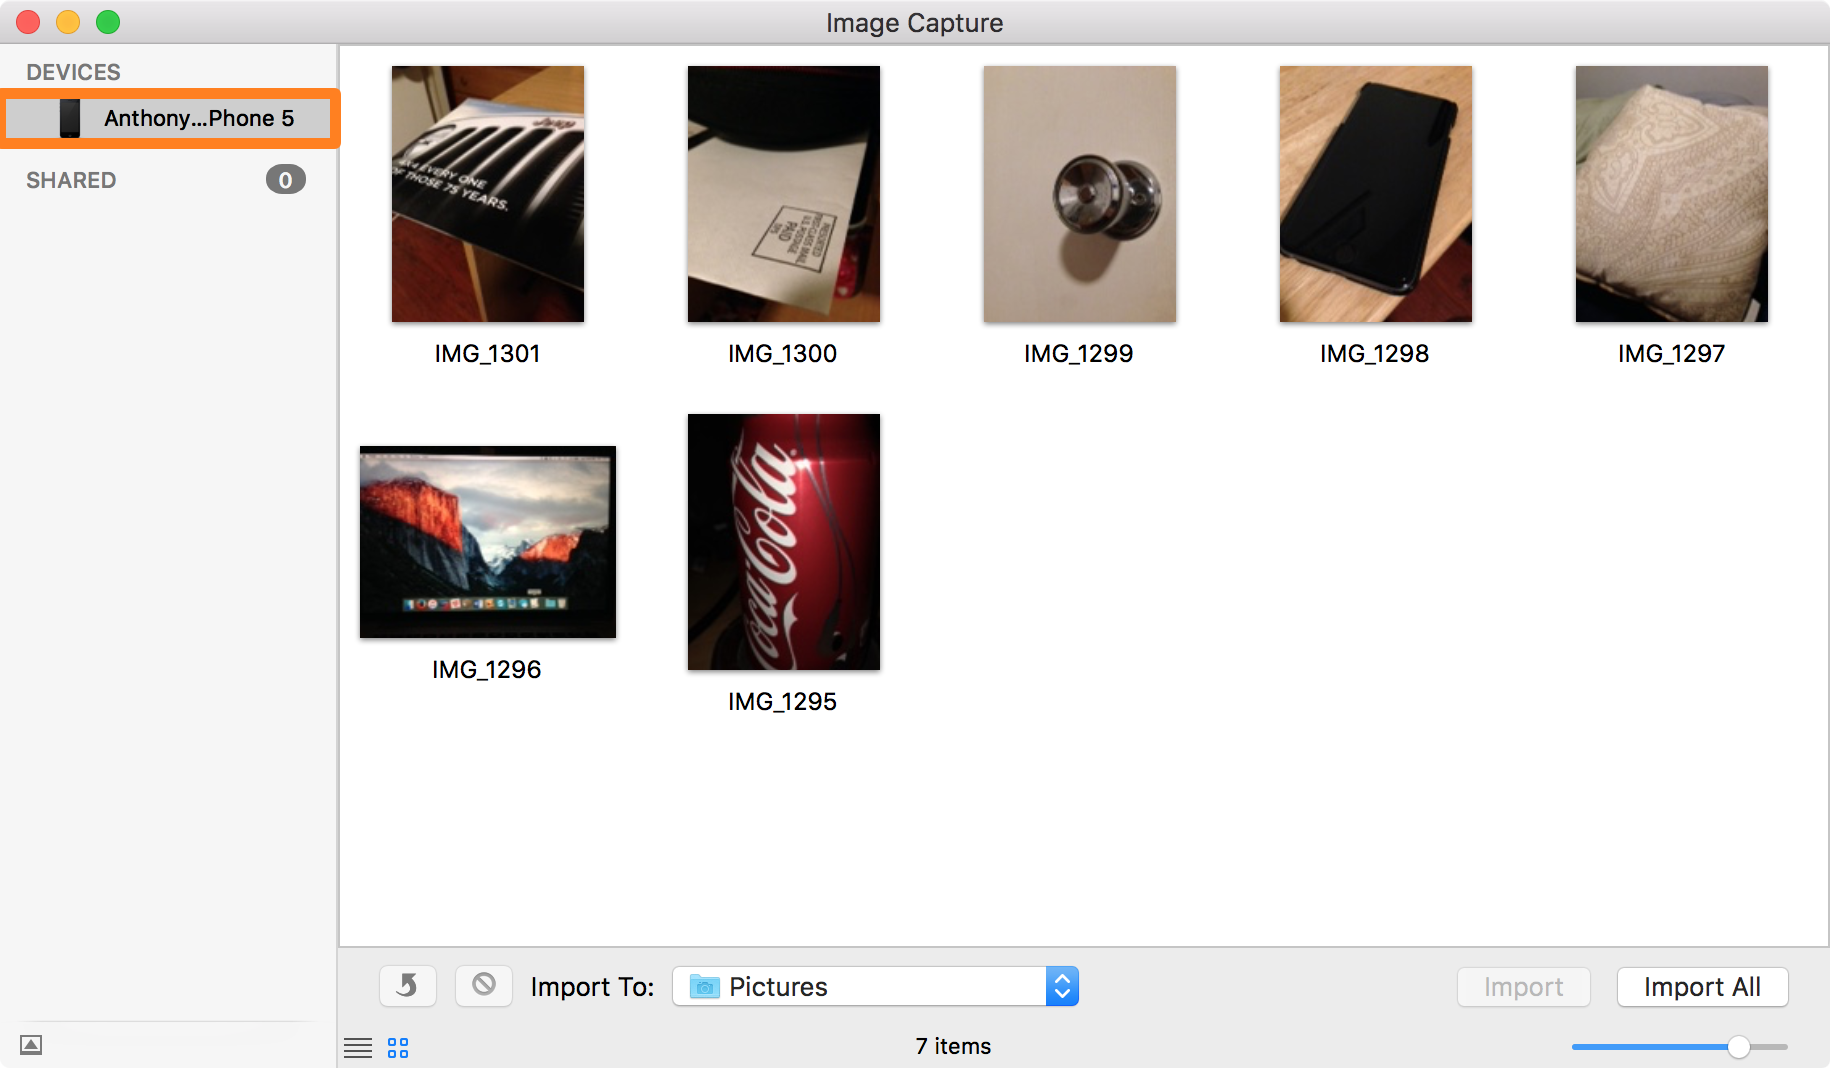 Scanning on a Mac Using Image Capture